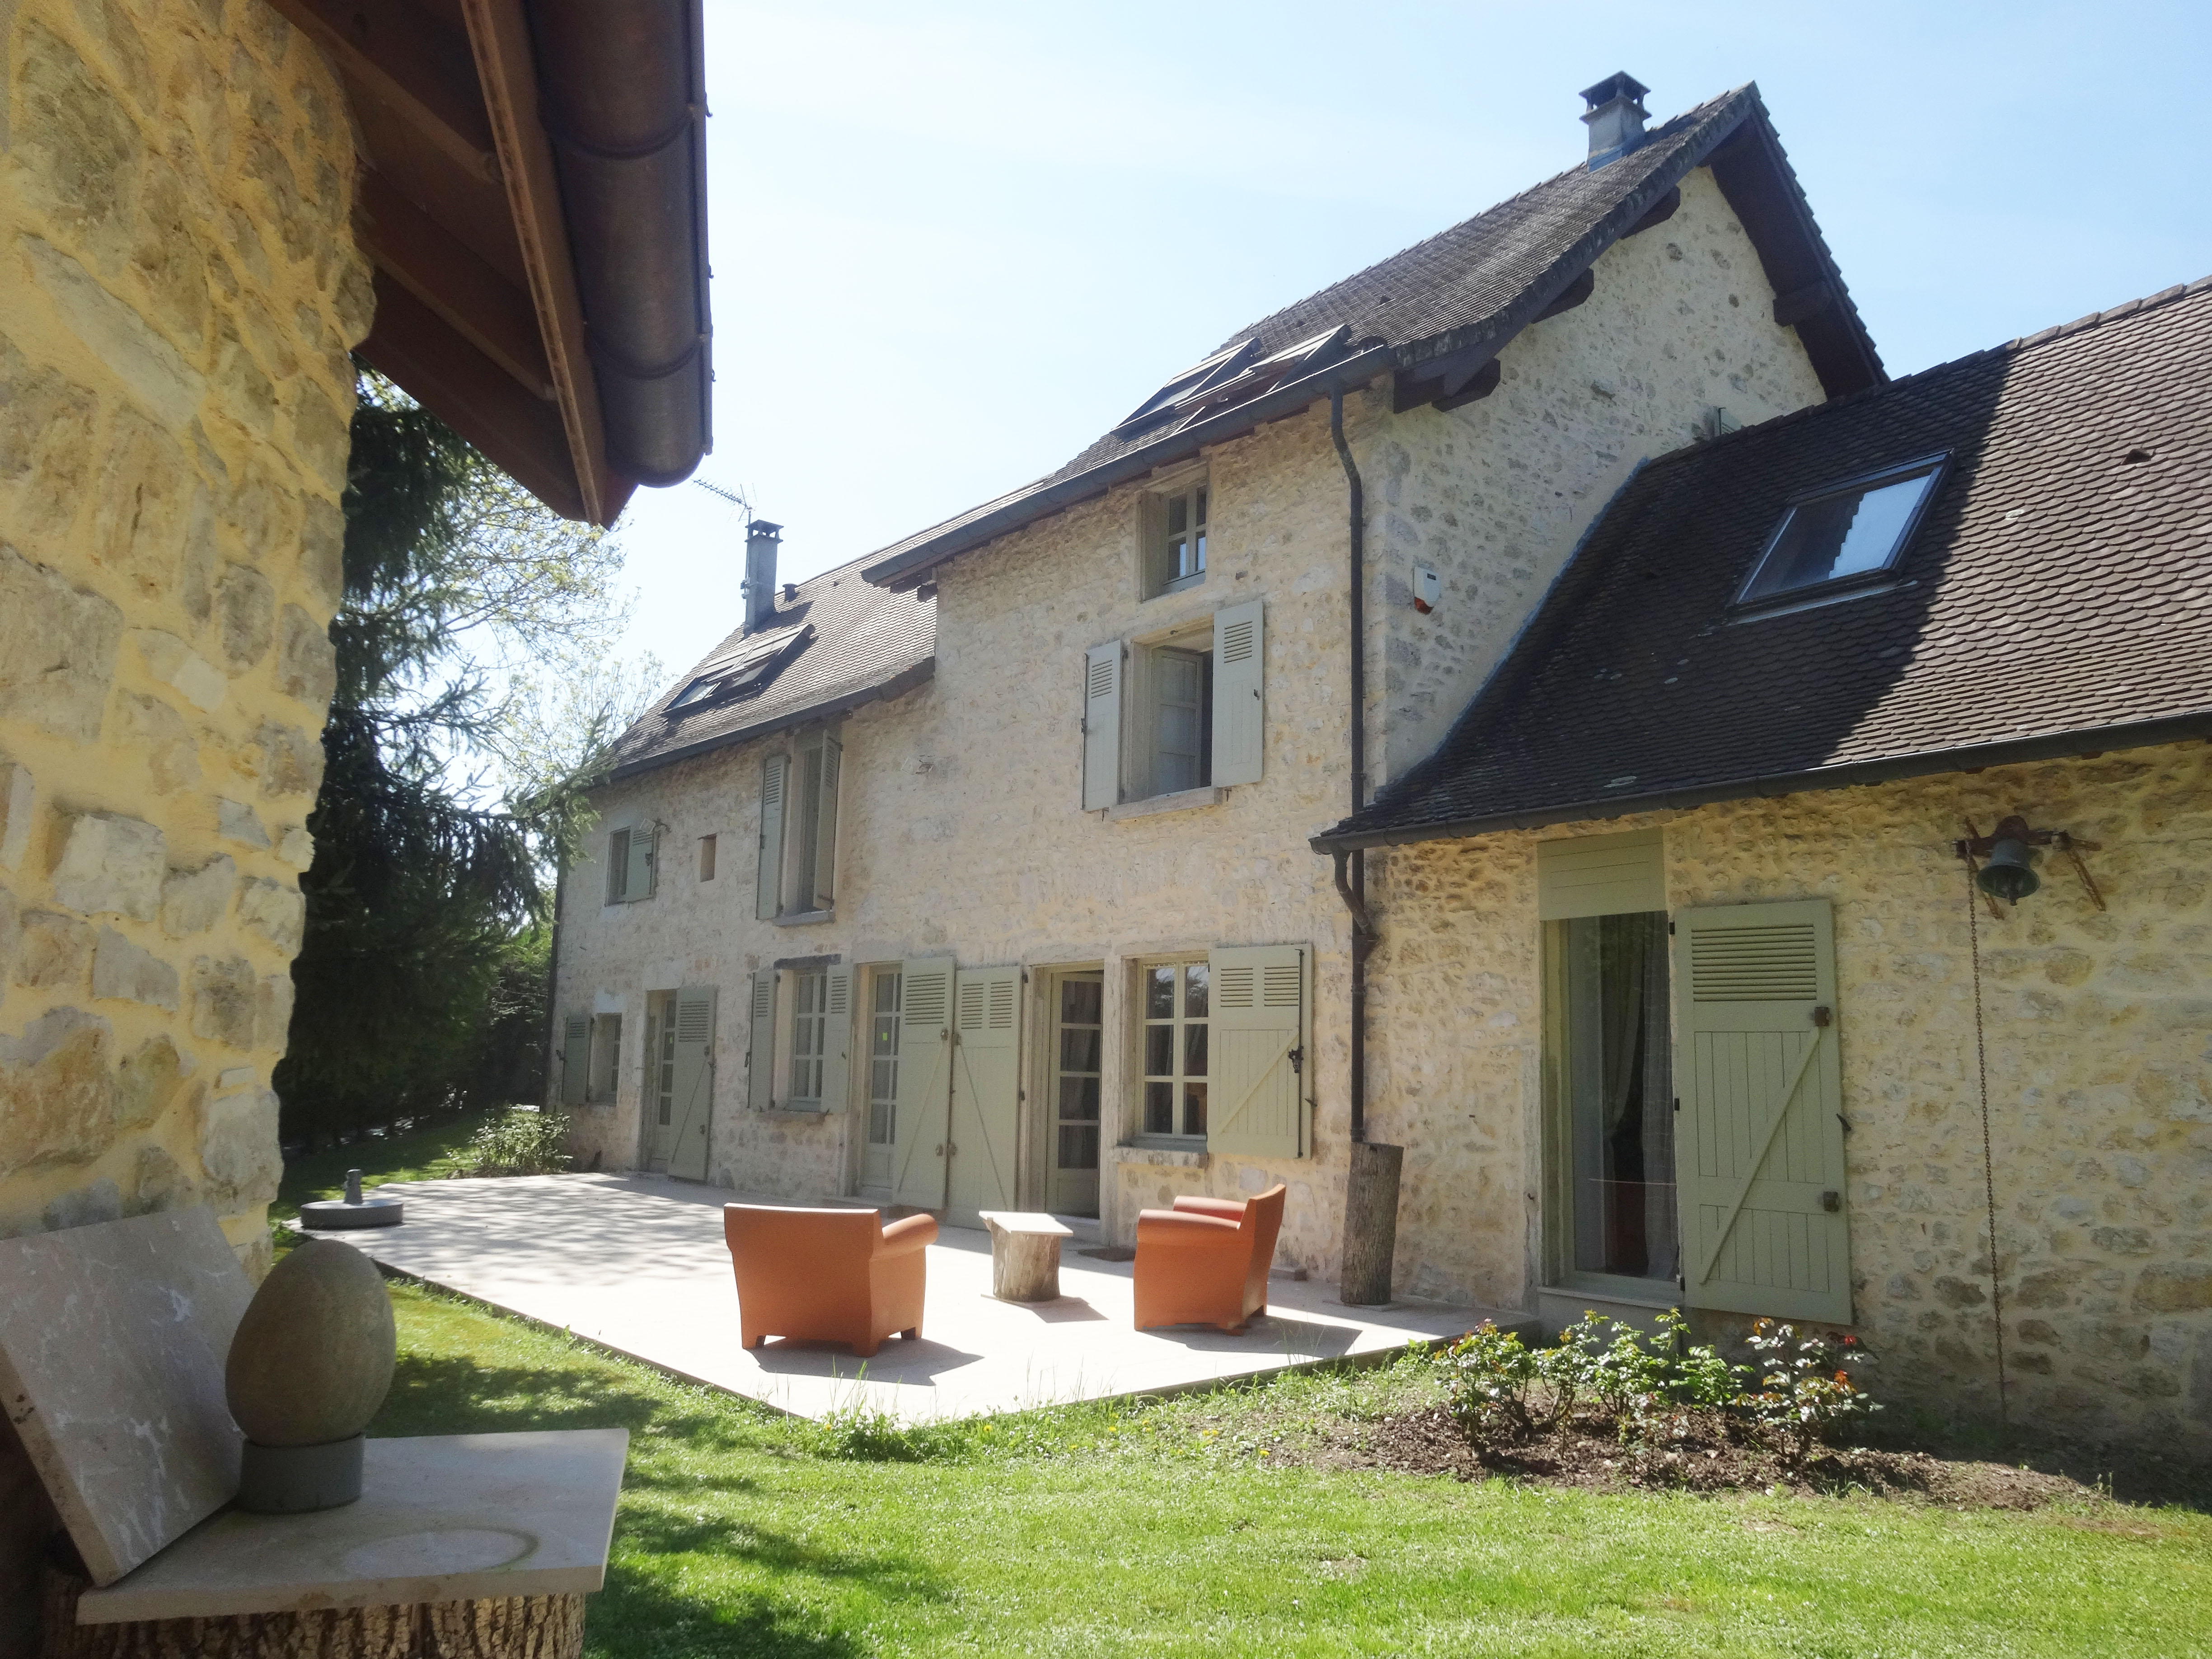 Single Family Home for Sale at MAISON DE CARACTERE AVEC HAMMAM, SPA, FITNESS CREYS Other Rhone-Alpes, Rhone-Alpes 38 France